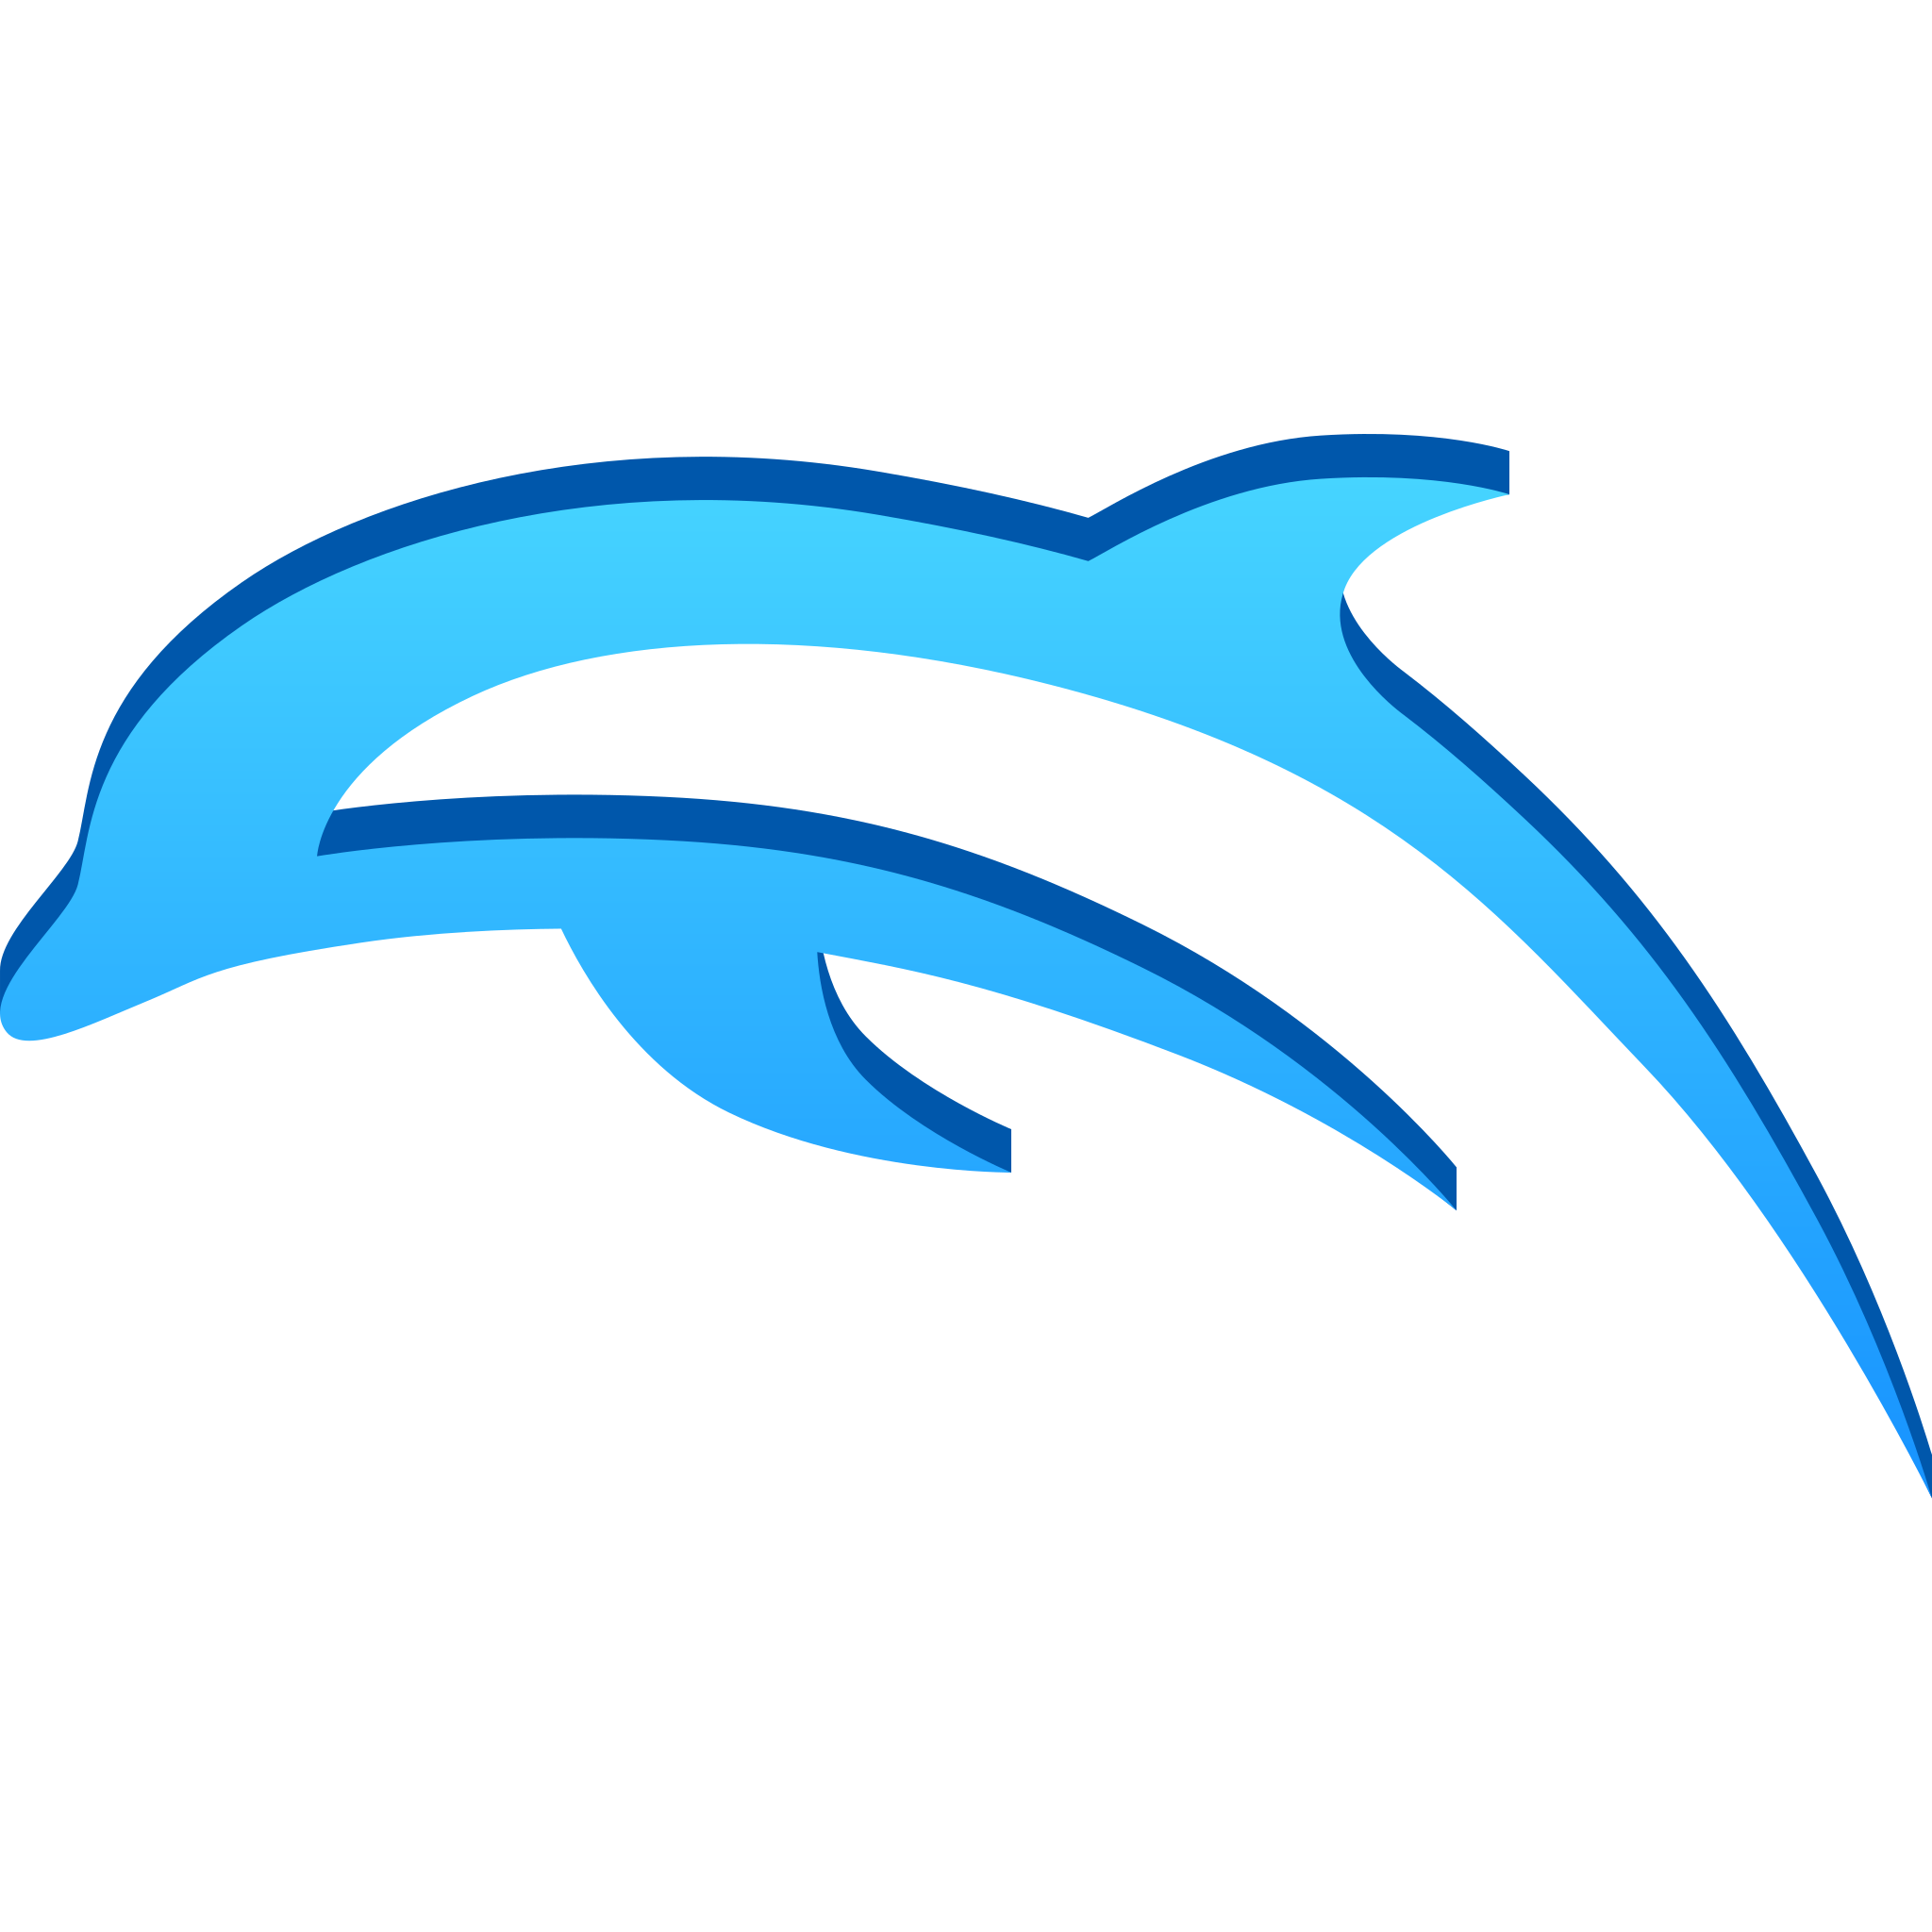 Clipart dolphin svg. File logo wikimedia commons